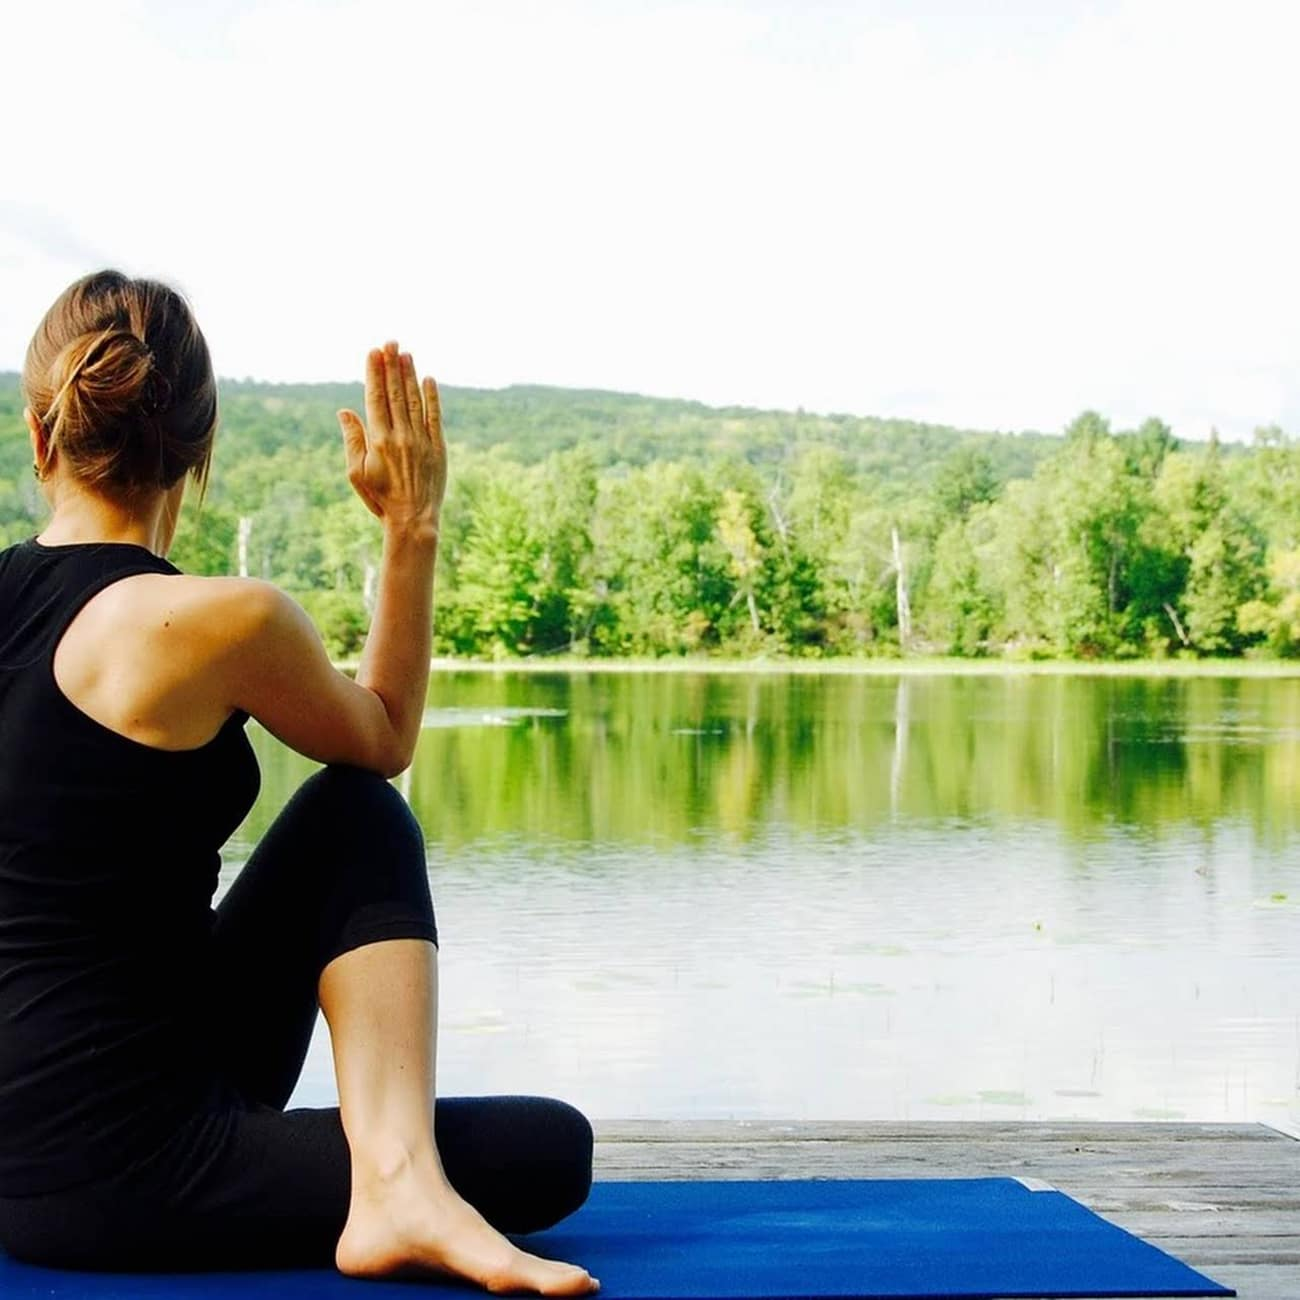 Woman doing yoga pose on a yoga mat outside by the lake for healthy 2020 year